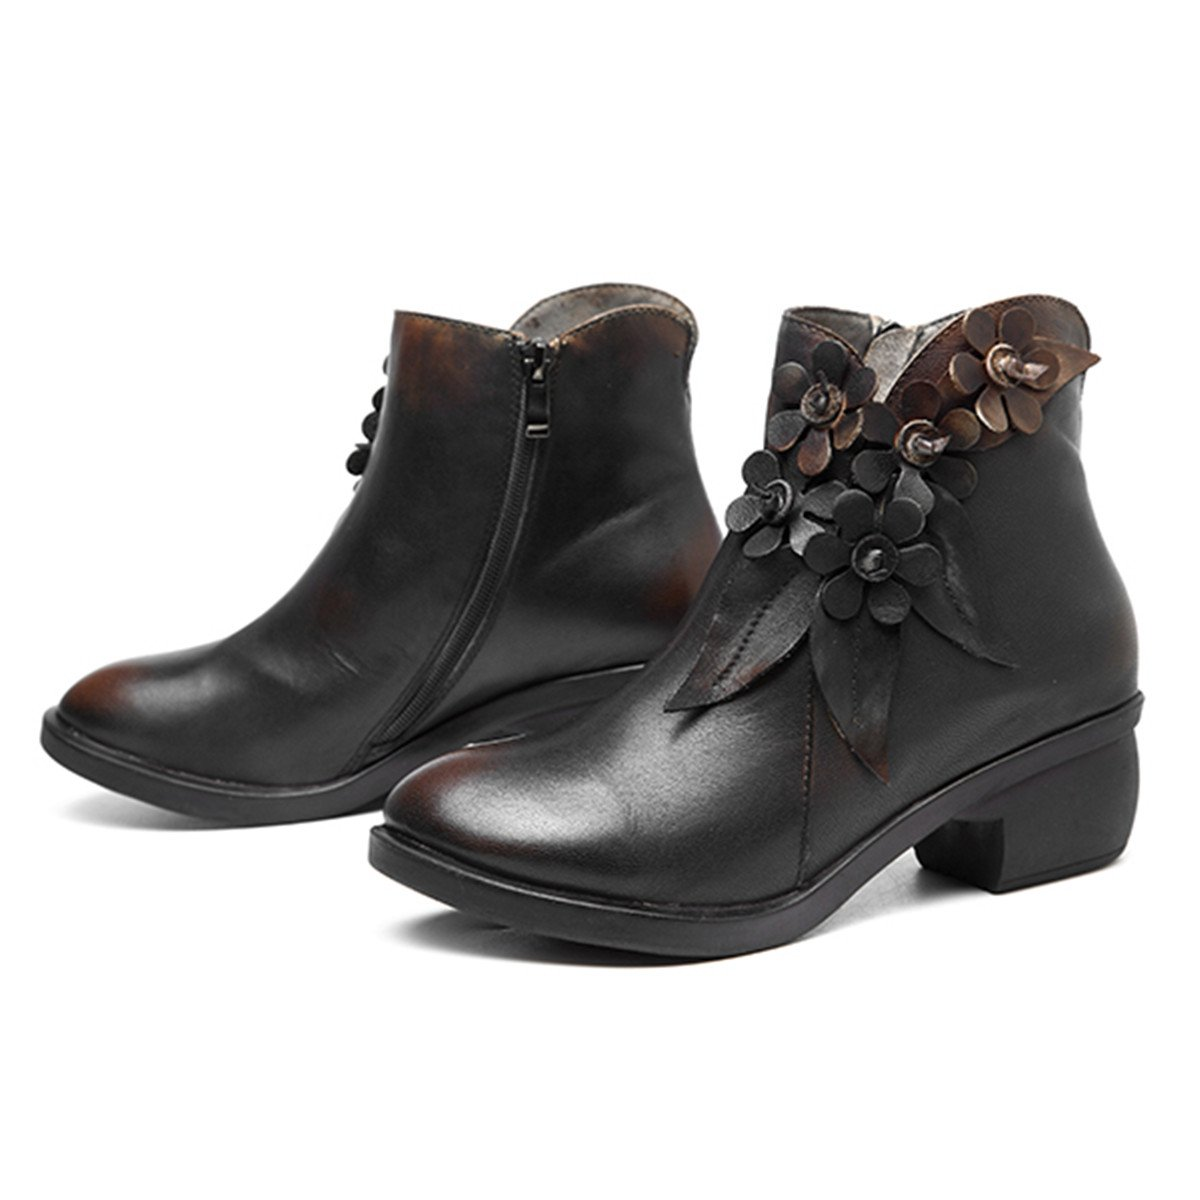 Socofy Leather Ankle Bootie, Women's Vintage Handmade Fashion Shoes Leather Boot Rose Floral Shoes Fashion Oxford Boots B077G4W75M 7 M US|Dark Grey c19d4a